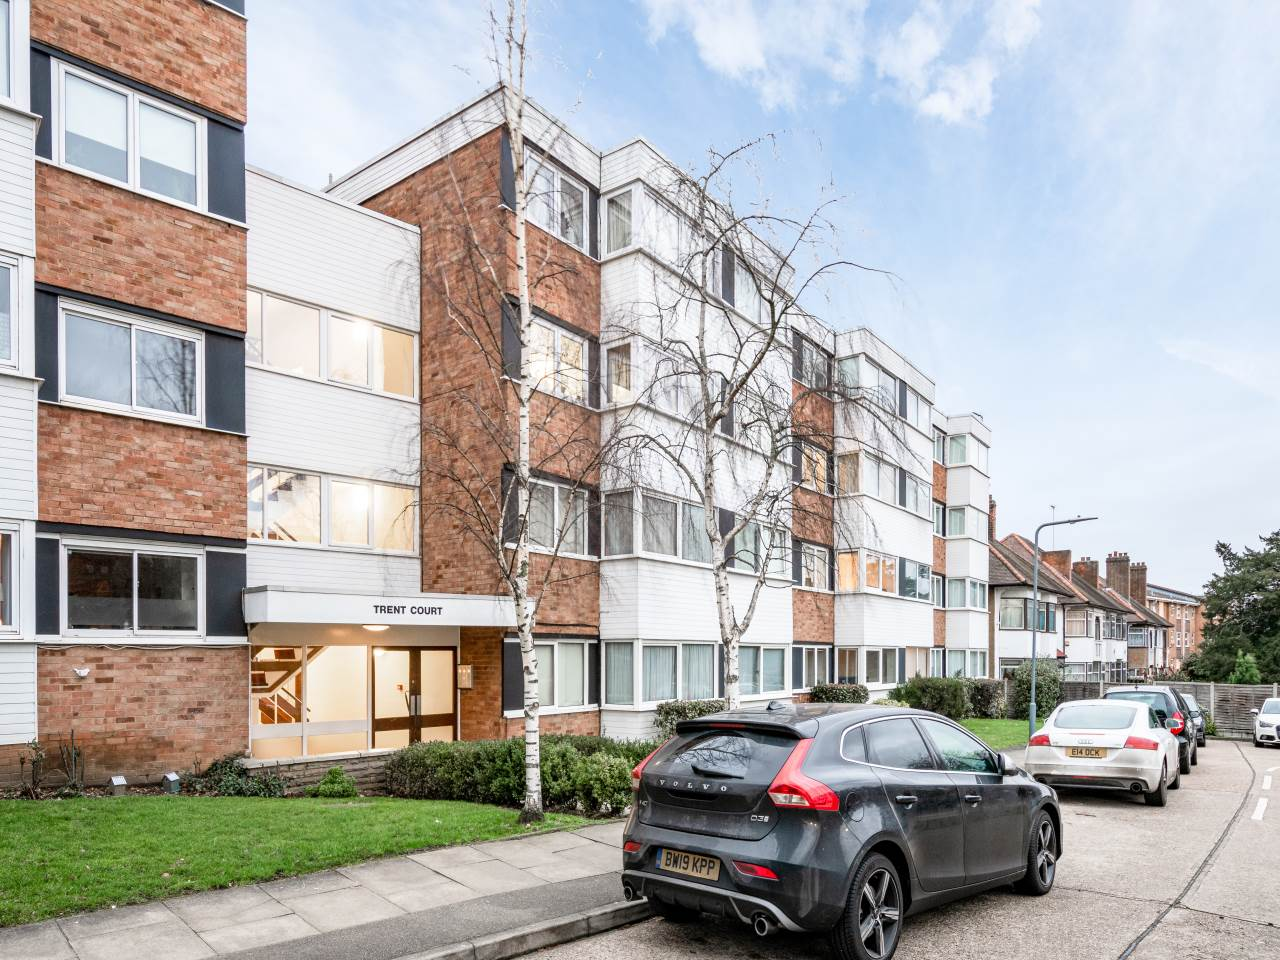 2 bed flat for sale in New Wanstead - Property Image 1